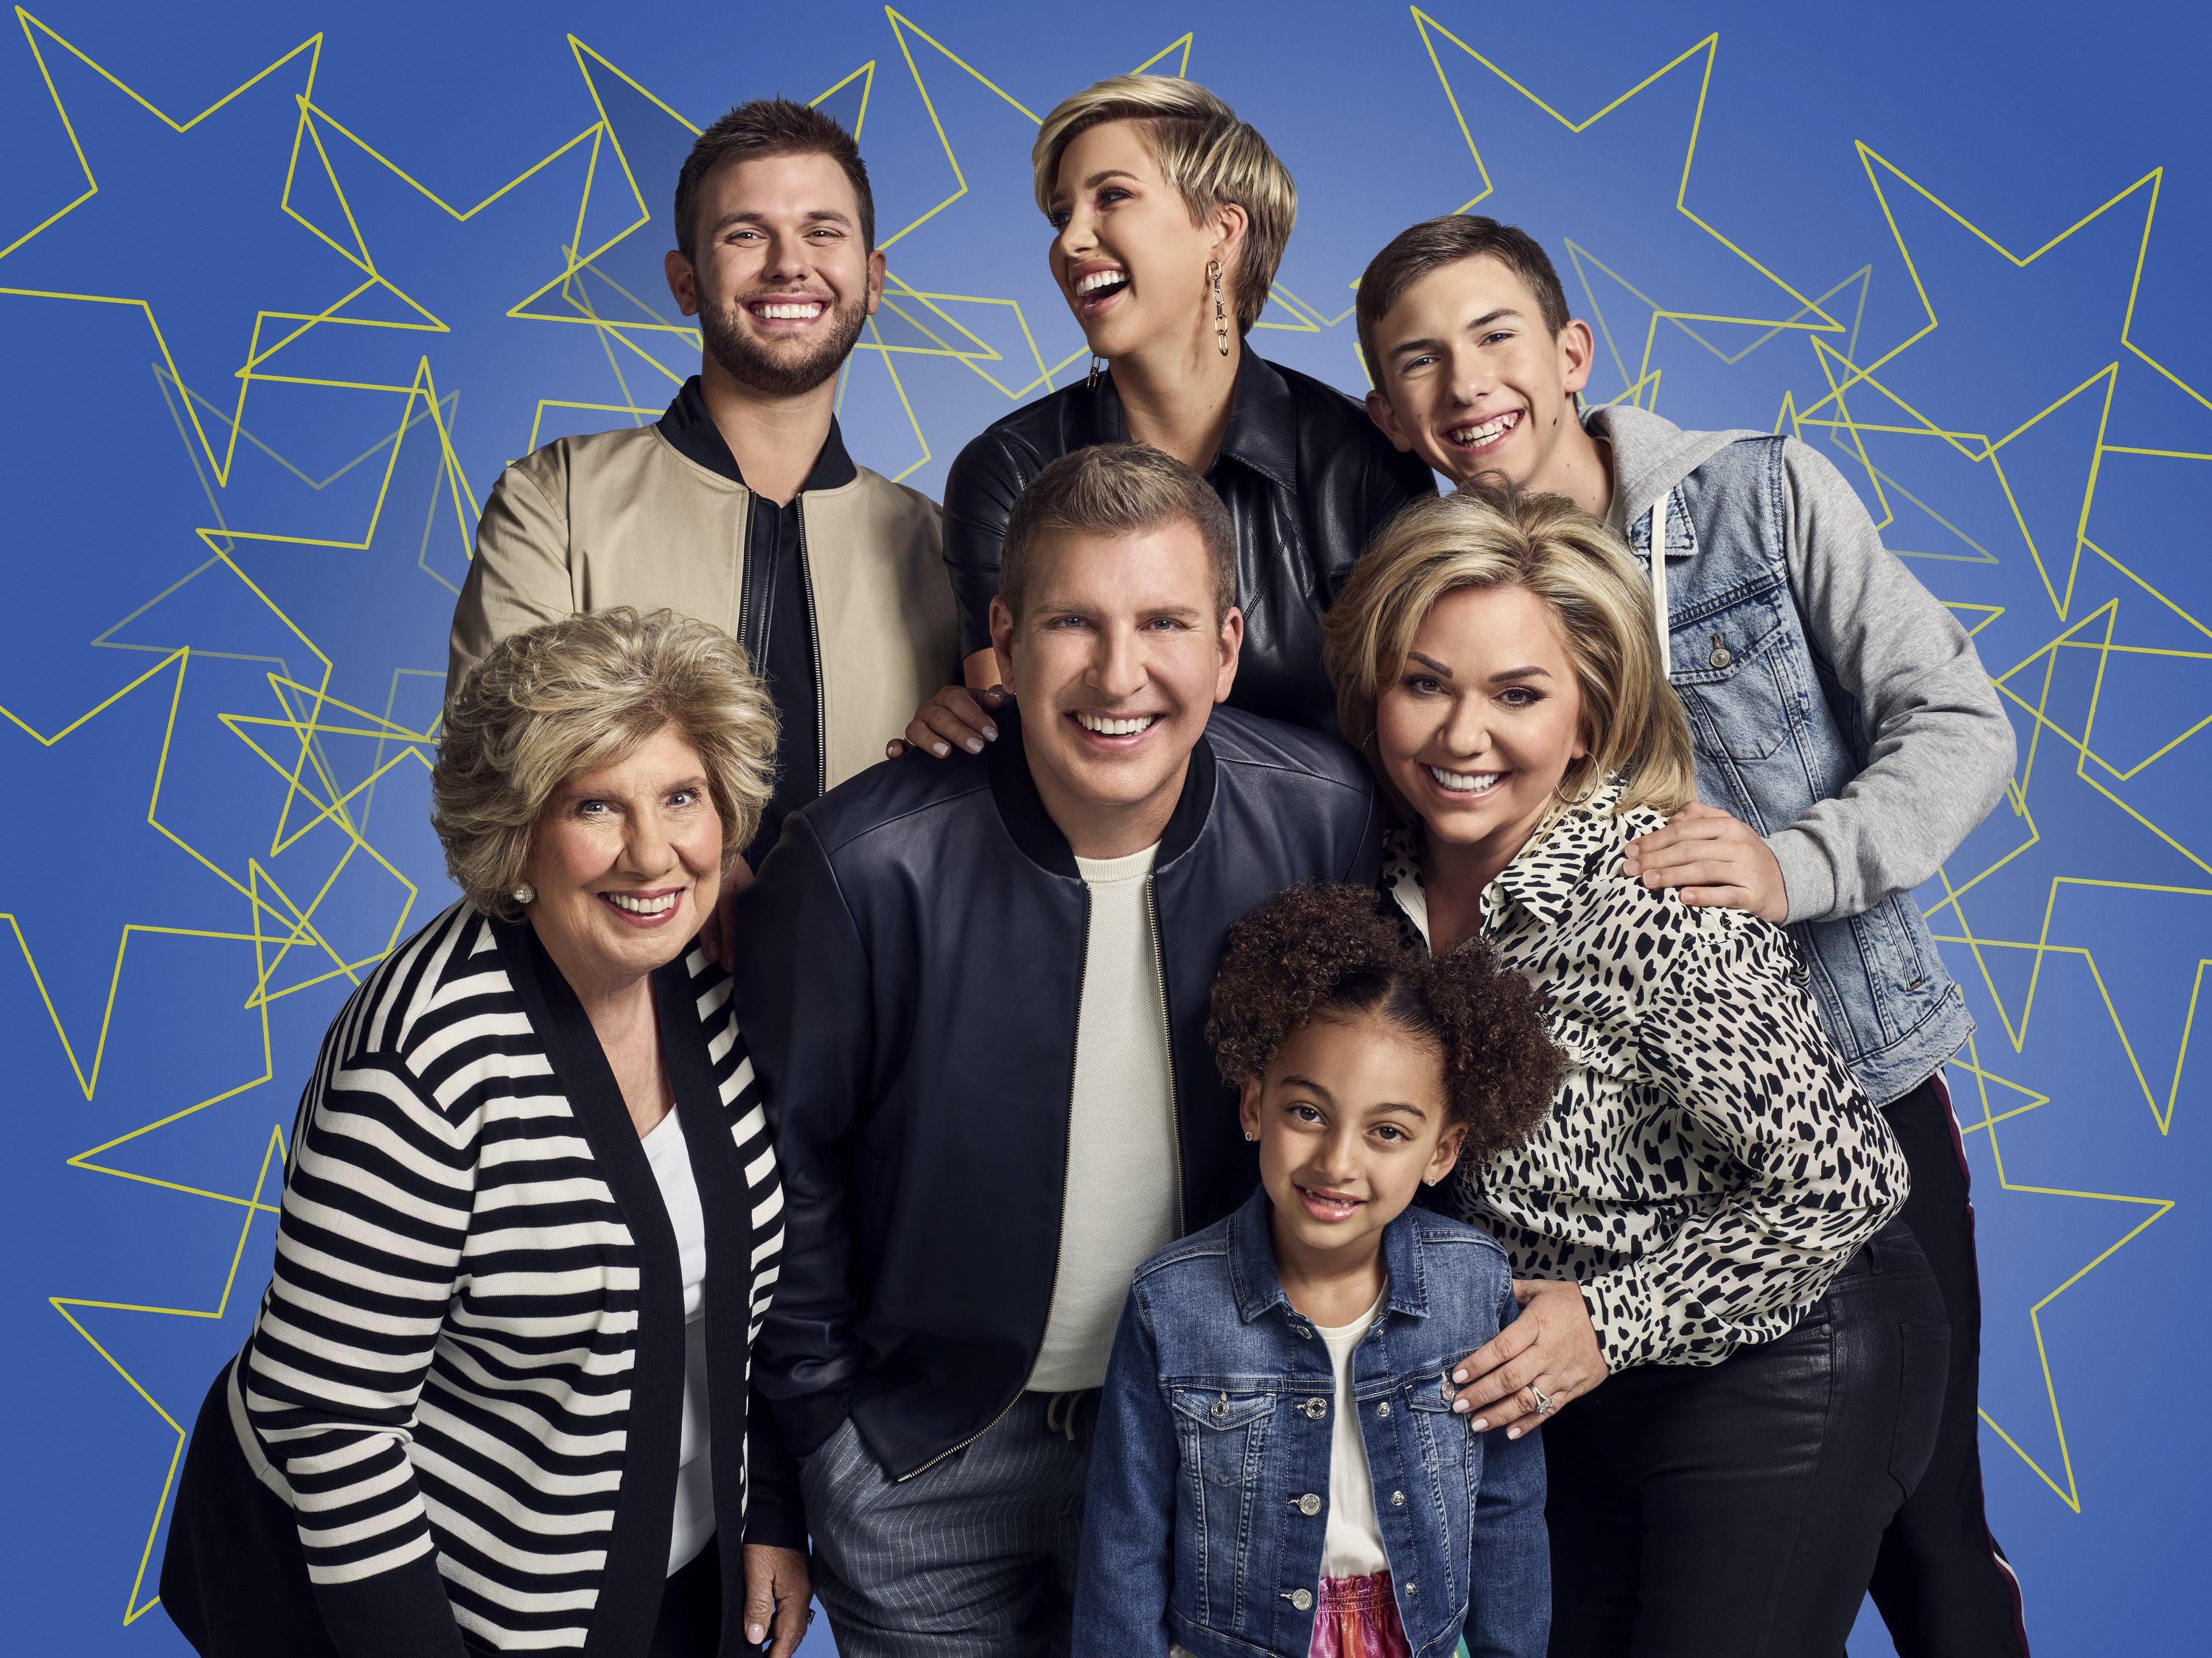 Faye Chrisley, Chase Chrisley, Todd Chrisley, Savannah Chrisley, Chloe Chrisley, Julie Chrisley,  and Grayson Chrisley pictured on March 9, 2020.   Source: Getty Images.